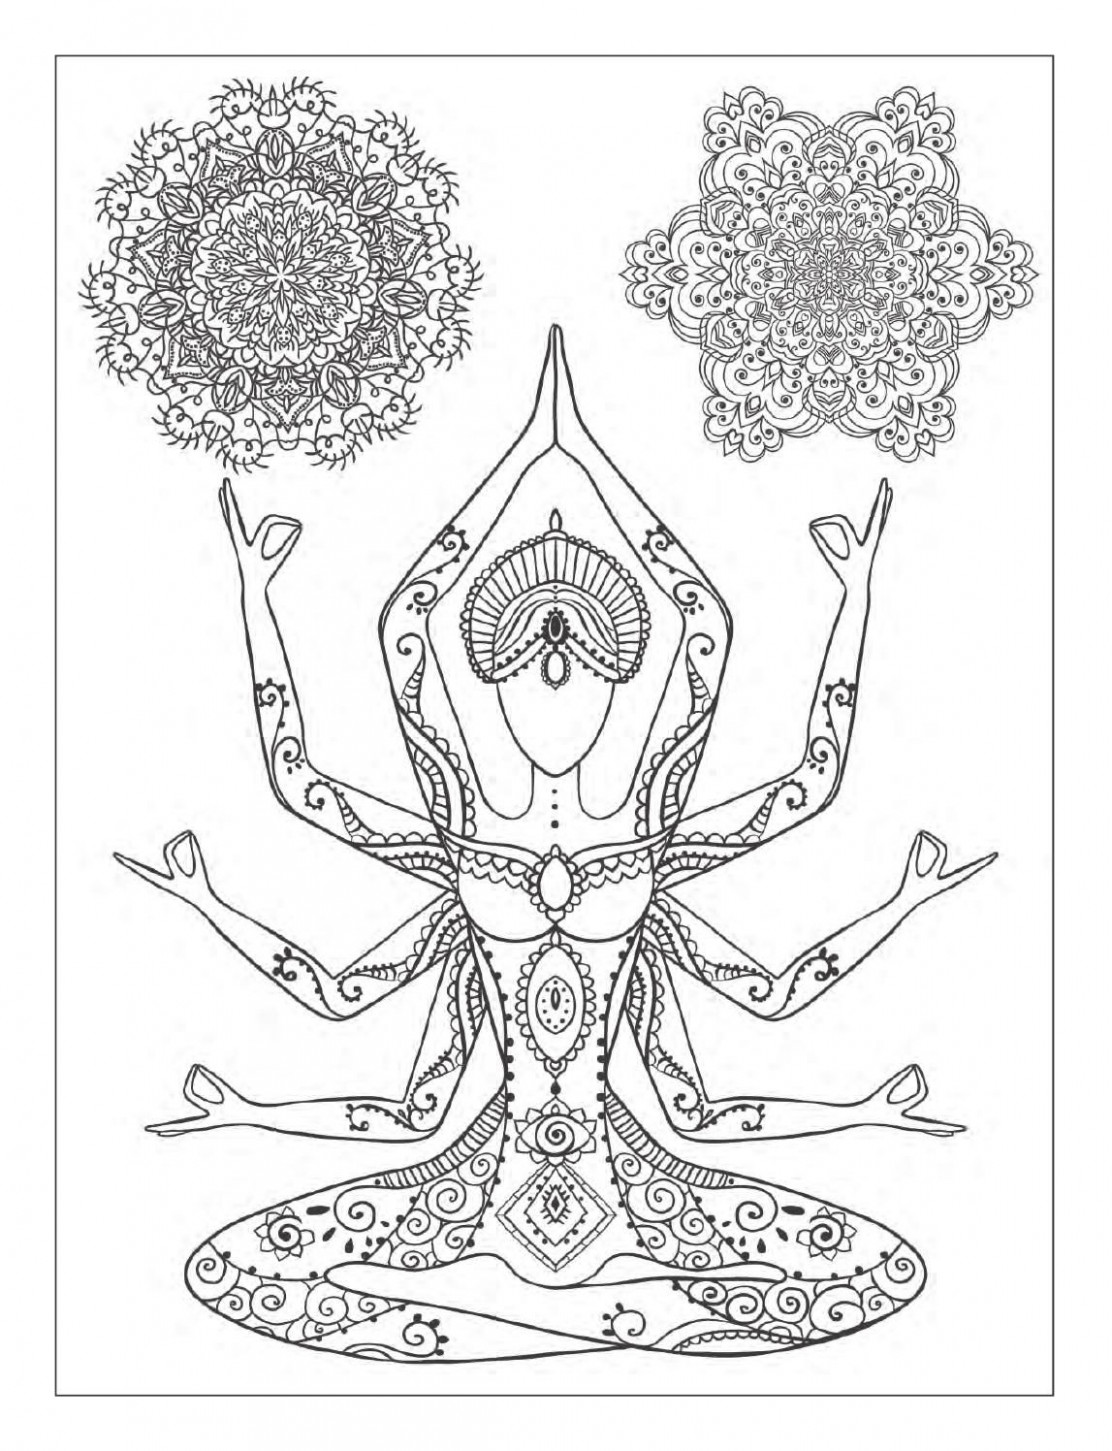 Mandala Coloring Pages Printable Read More About The Best For ...